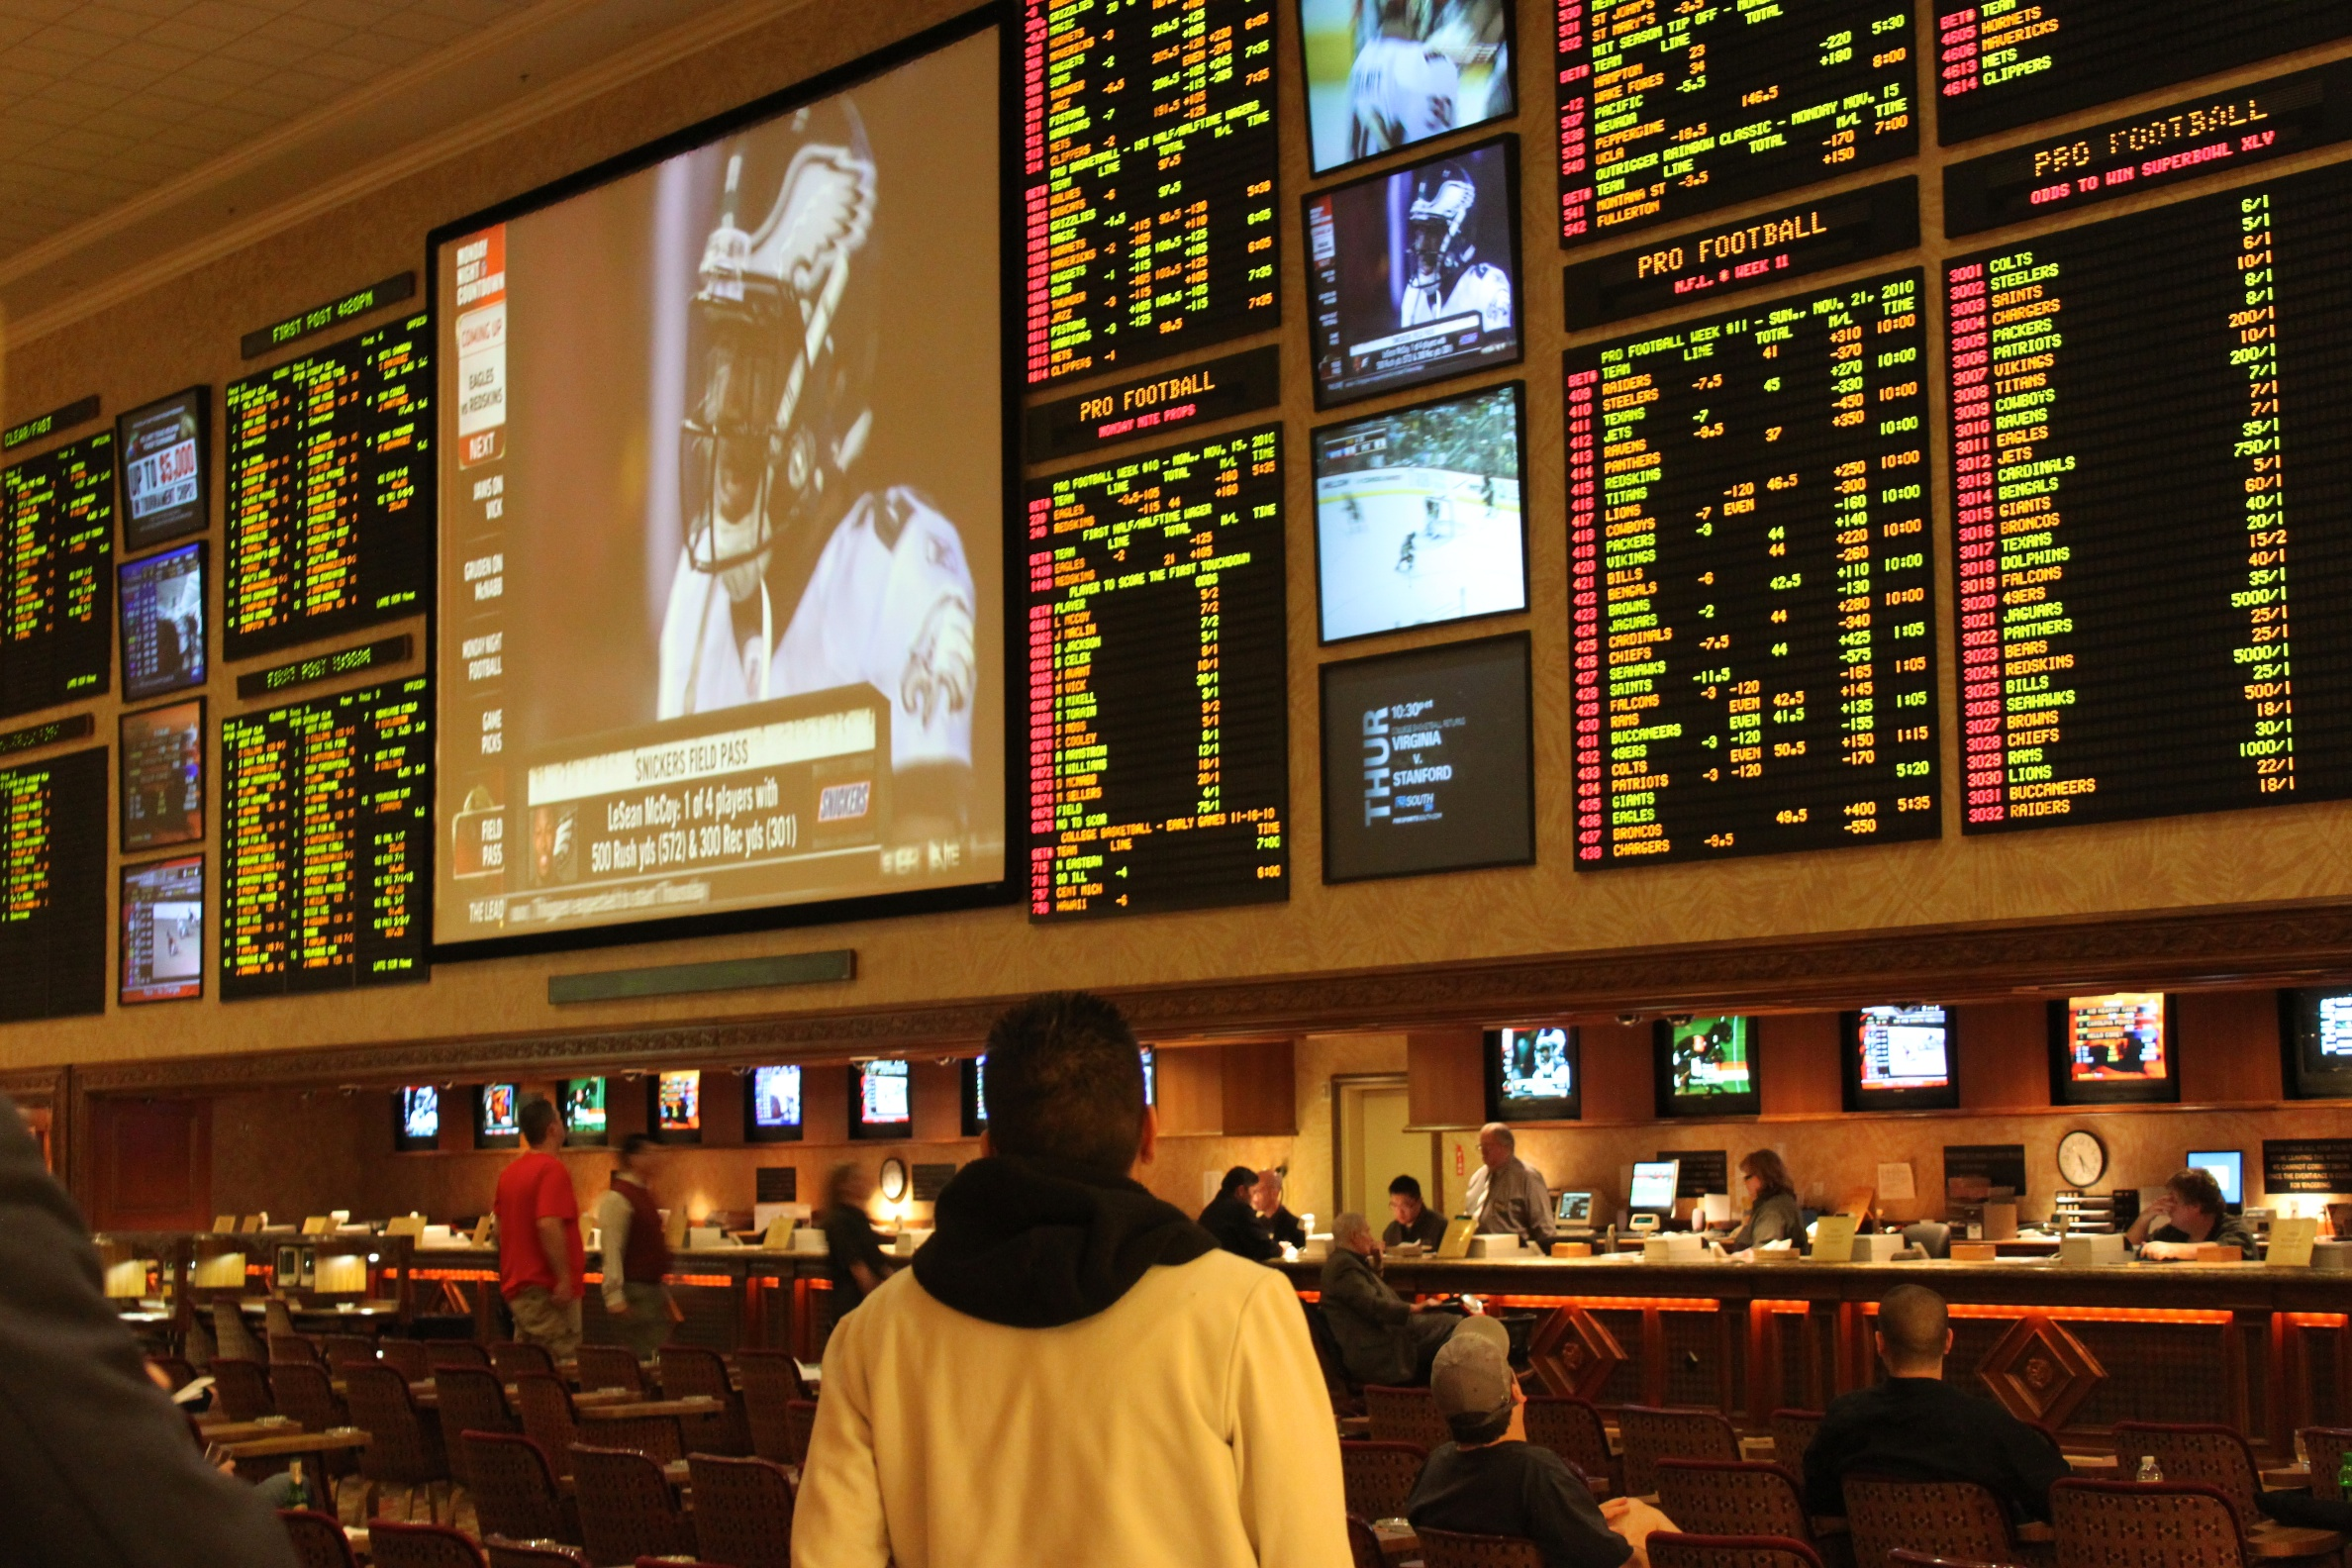 Sports gambling websites slot machine gambling online